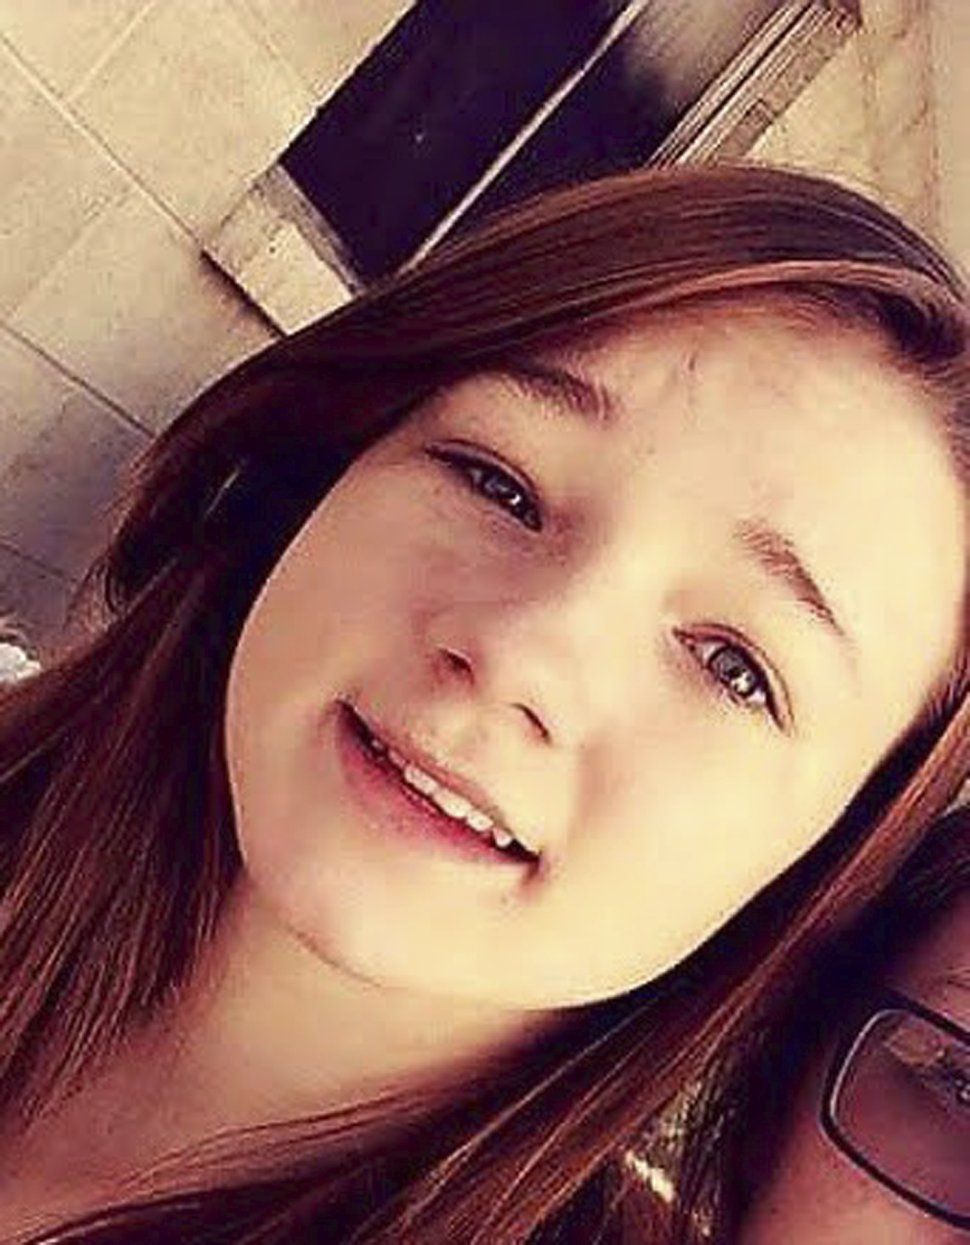 This undated photo provided by Amanda Hunt shows a selfie of her niece Brelynne